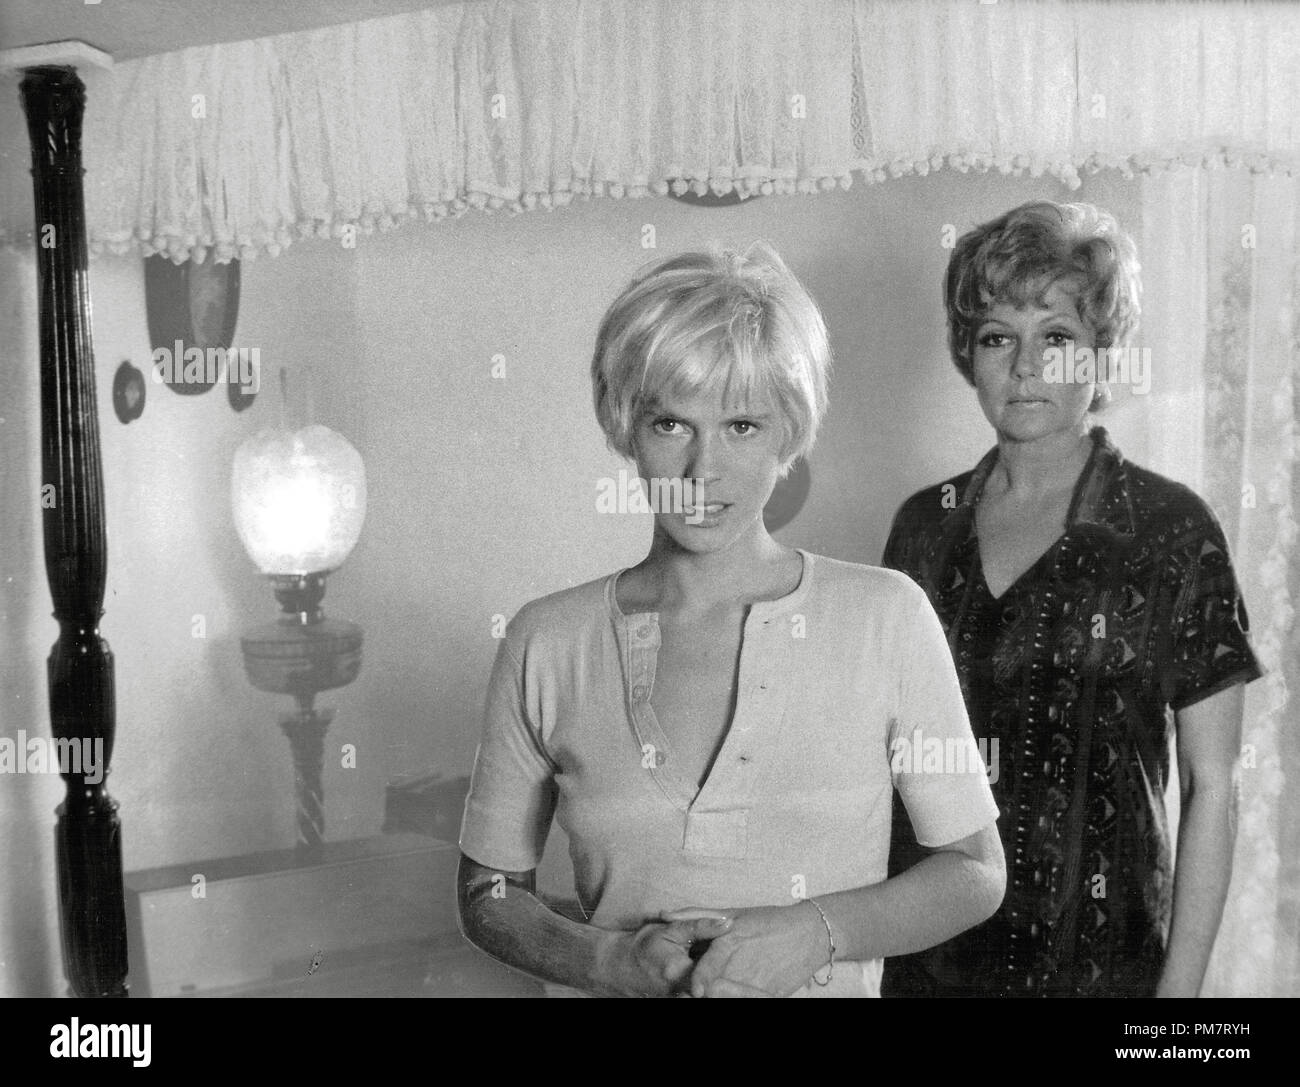 Mimsy Farmer and Rita Hayworth, 'Road to Salina' 1970  File Reference # 31386_486 - Stock Image